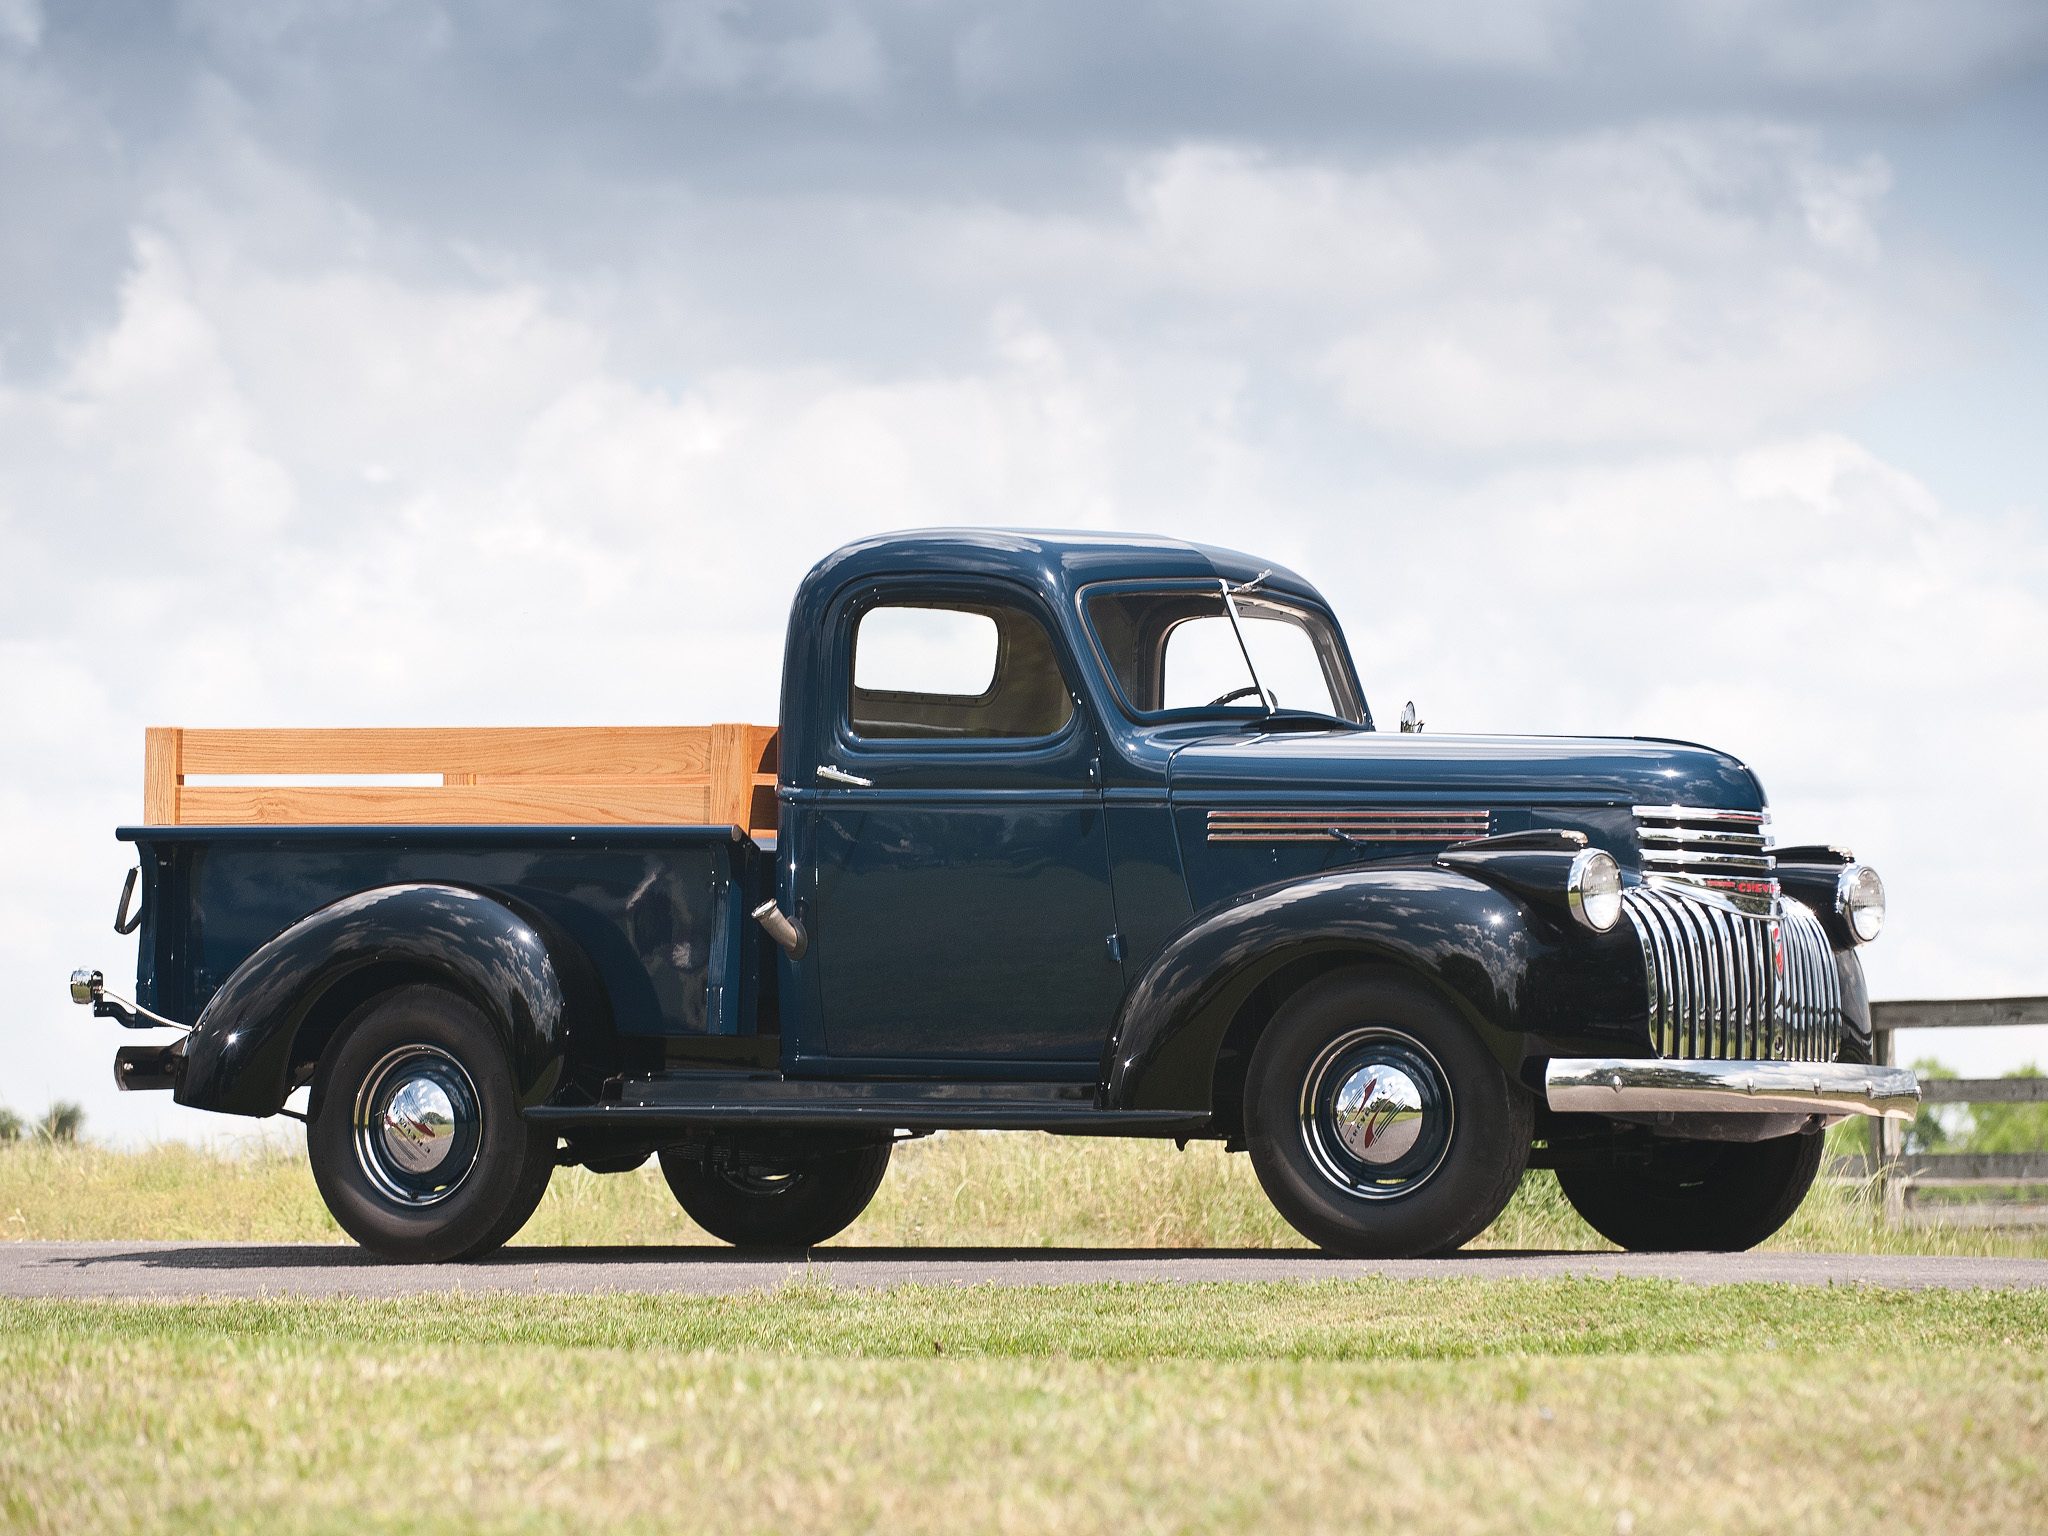 Chevrolet Pickup 1941 Wallpaper 233 Free Download Image Of